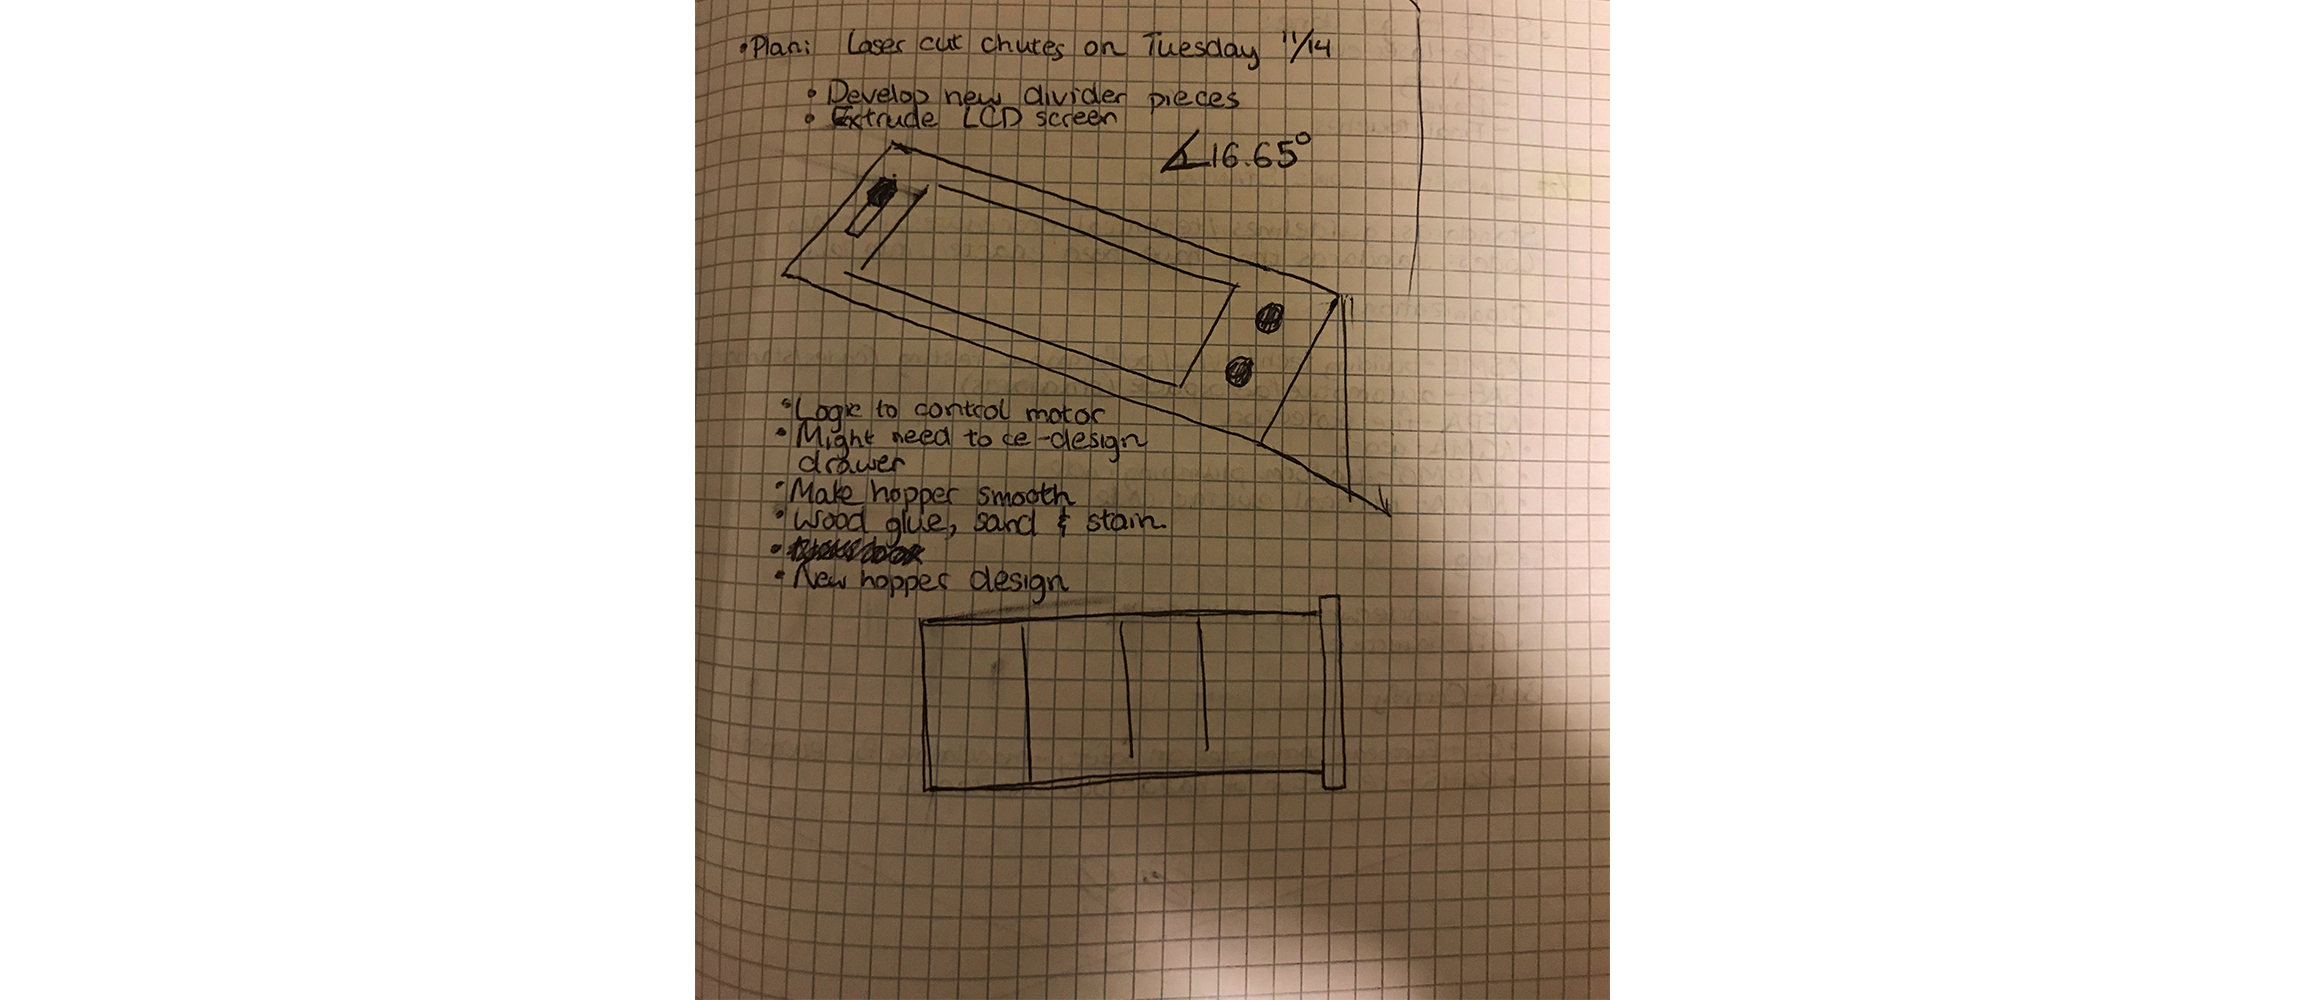 Revised LCD Housing - By creating this angular design for the screen, the user can press the buttons easier than before and it creates less glare on the screen when in direct light.